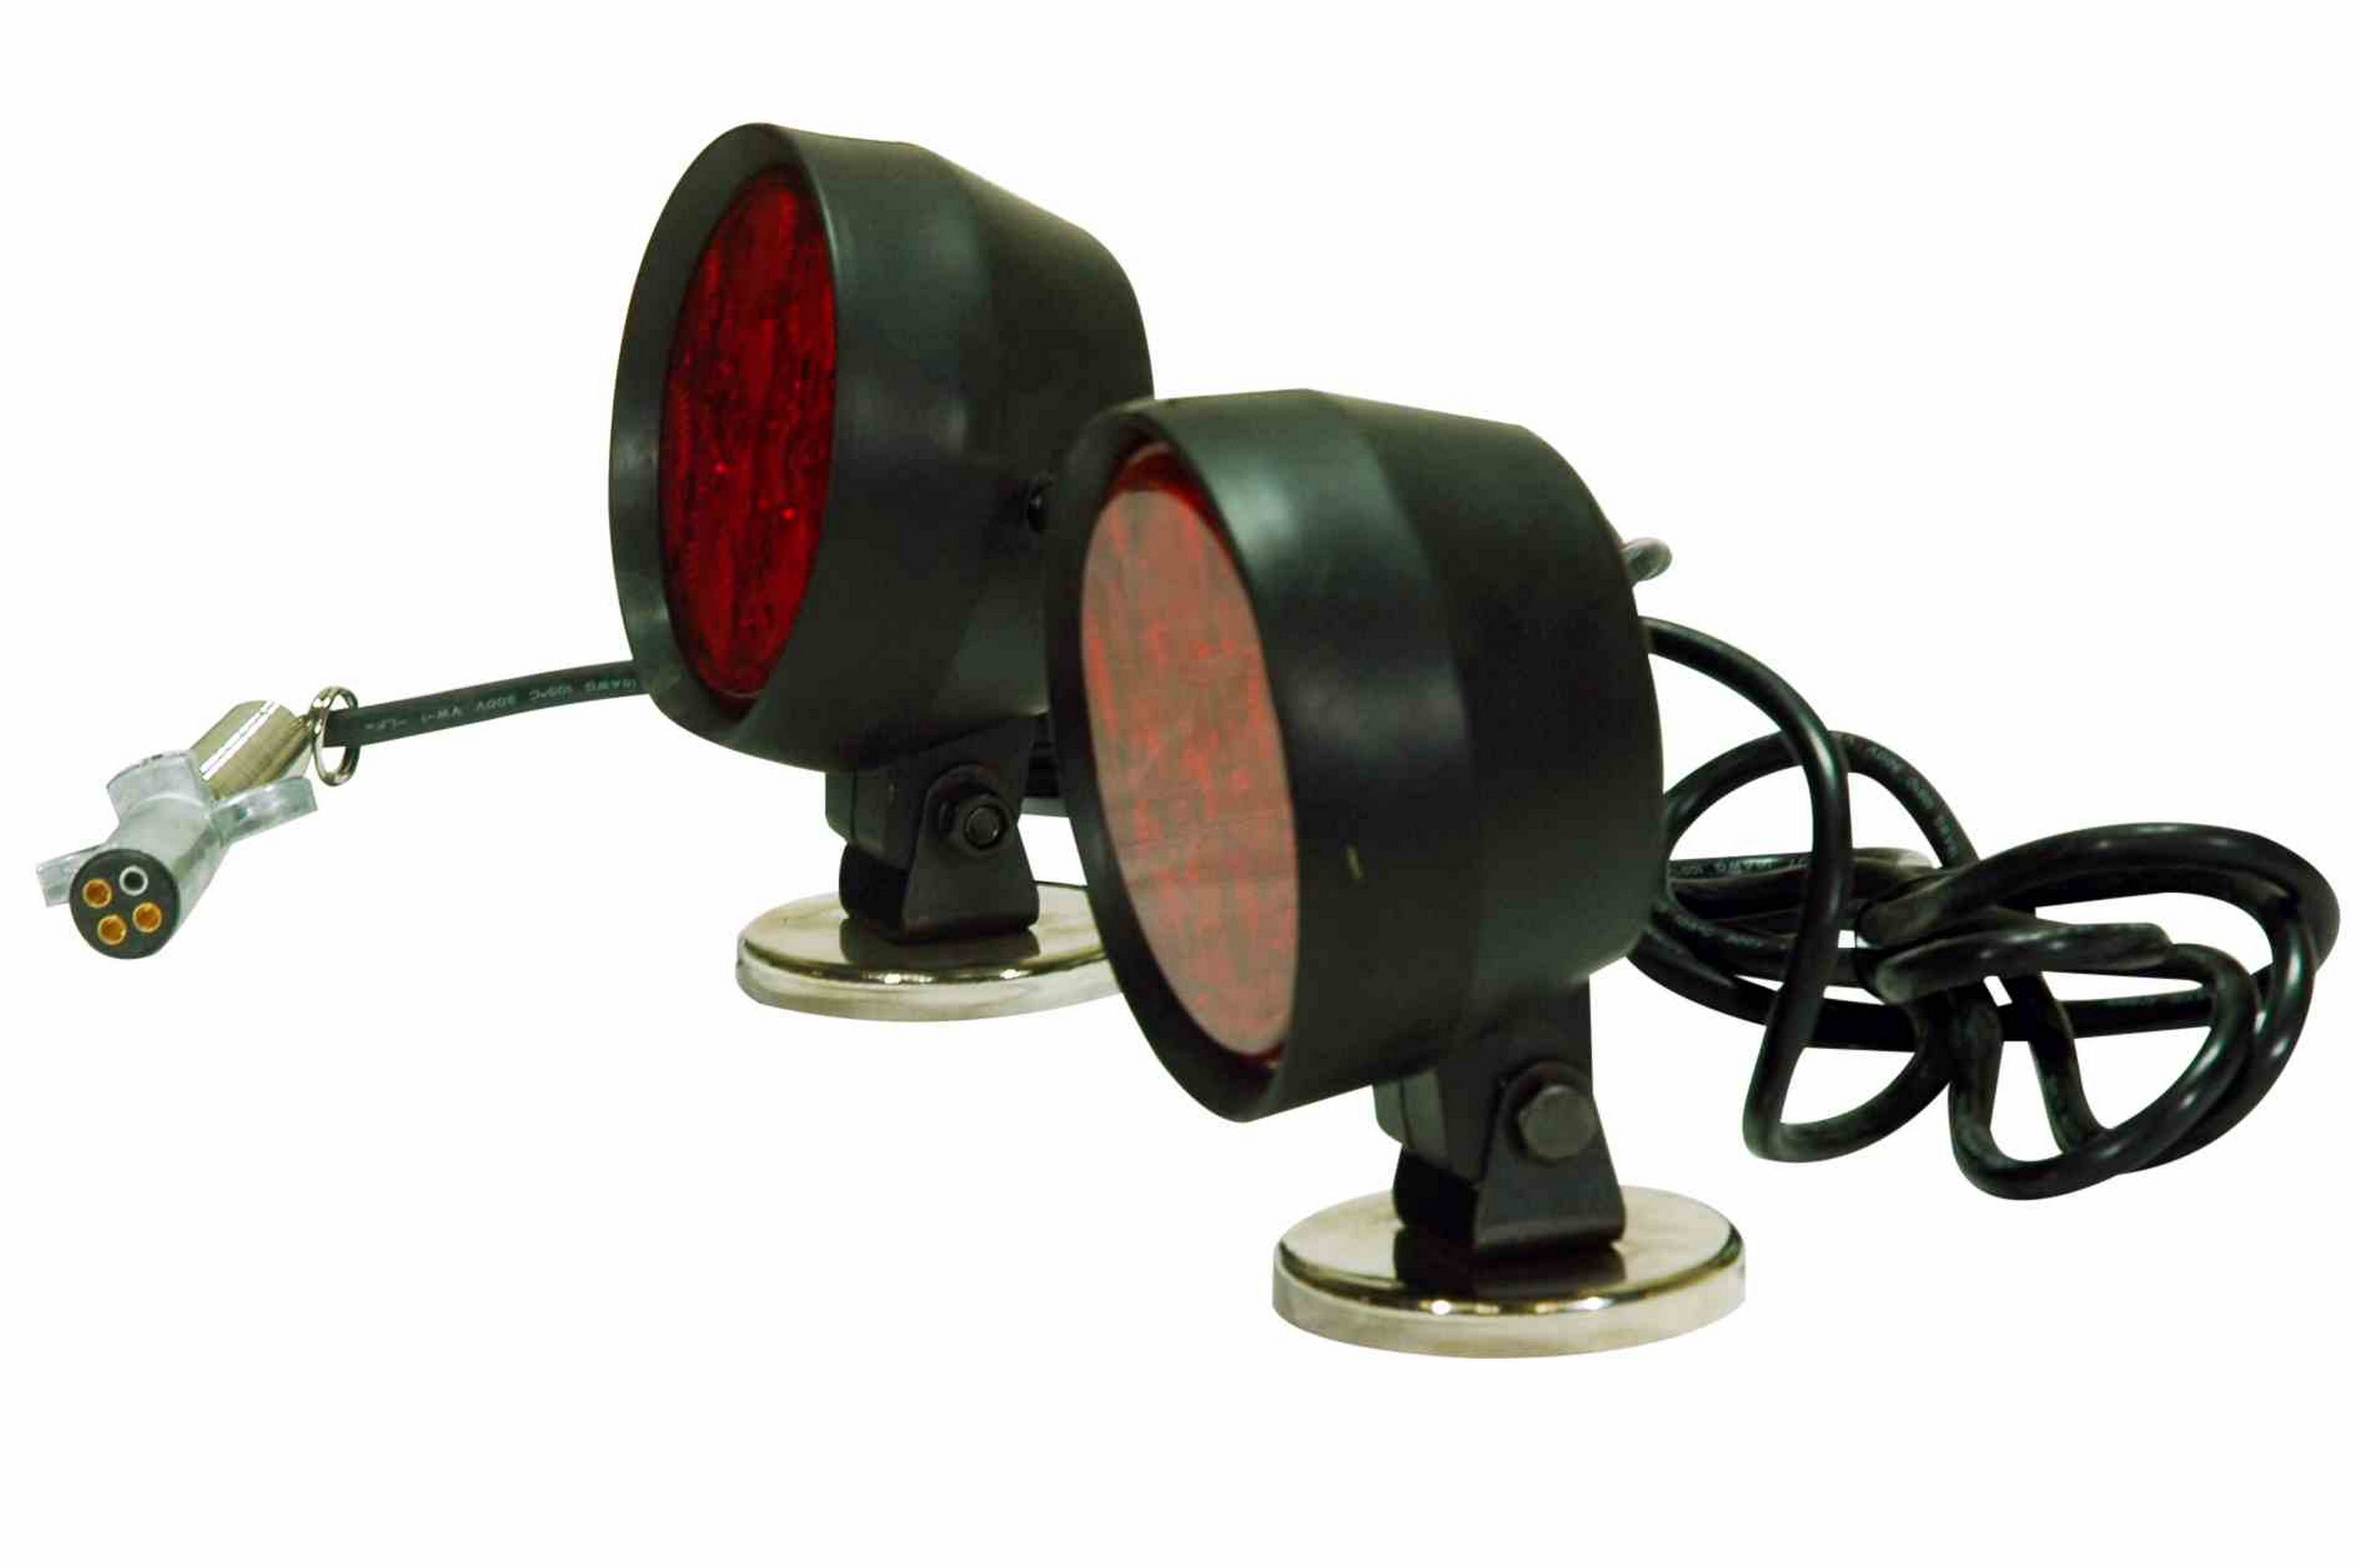 Led Tow Lights With Magnetic Base 30 Cable Weather Proof 12vdc Military Trailer Plug Wiring Diagram Hi Res Image 4 Right Side View Of The Heads And Cords